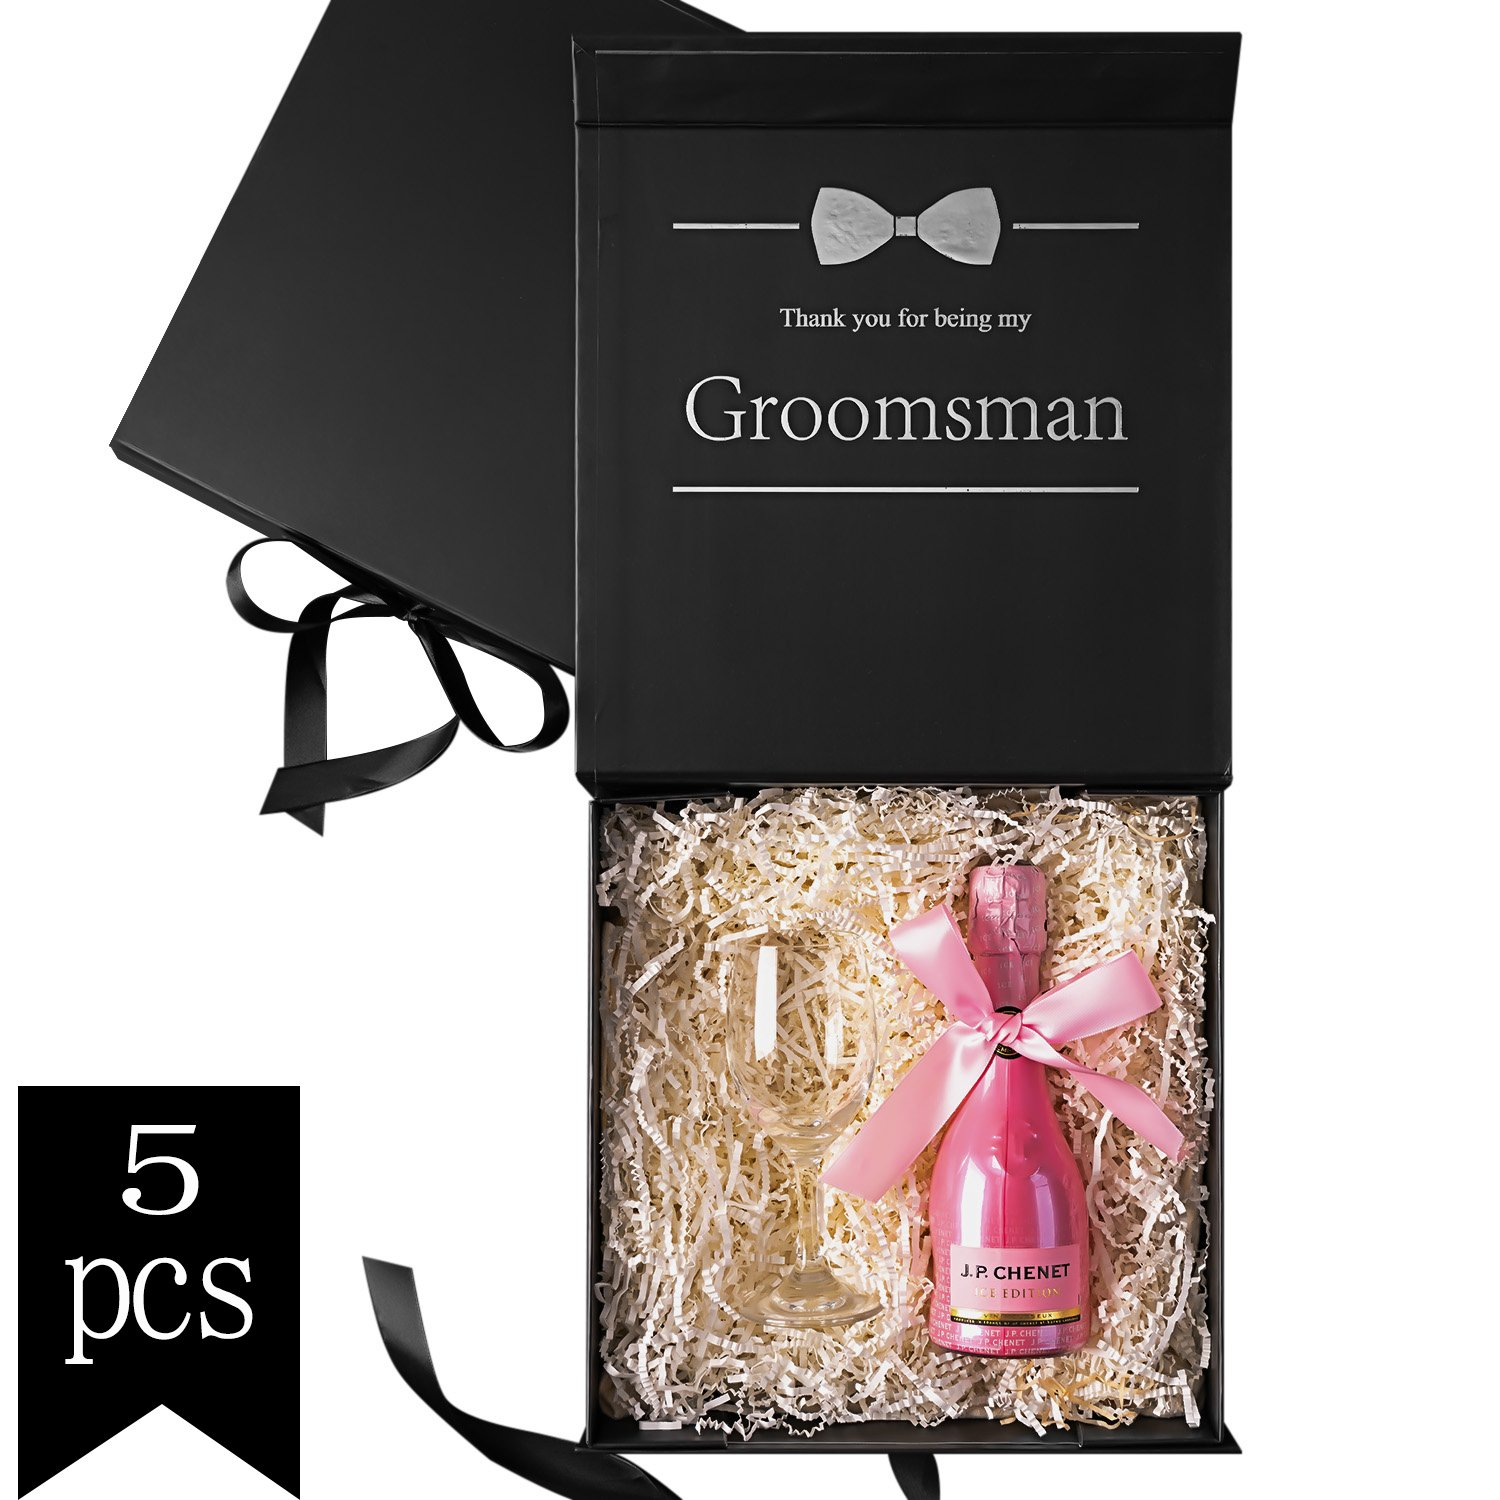 Crisky Groomsman Gift Box with Silver Foiled Text | Set of 5 Empty Boxes | Perfect for Will You Be My Groomsman gift and wedding present